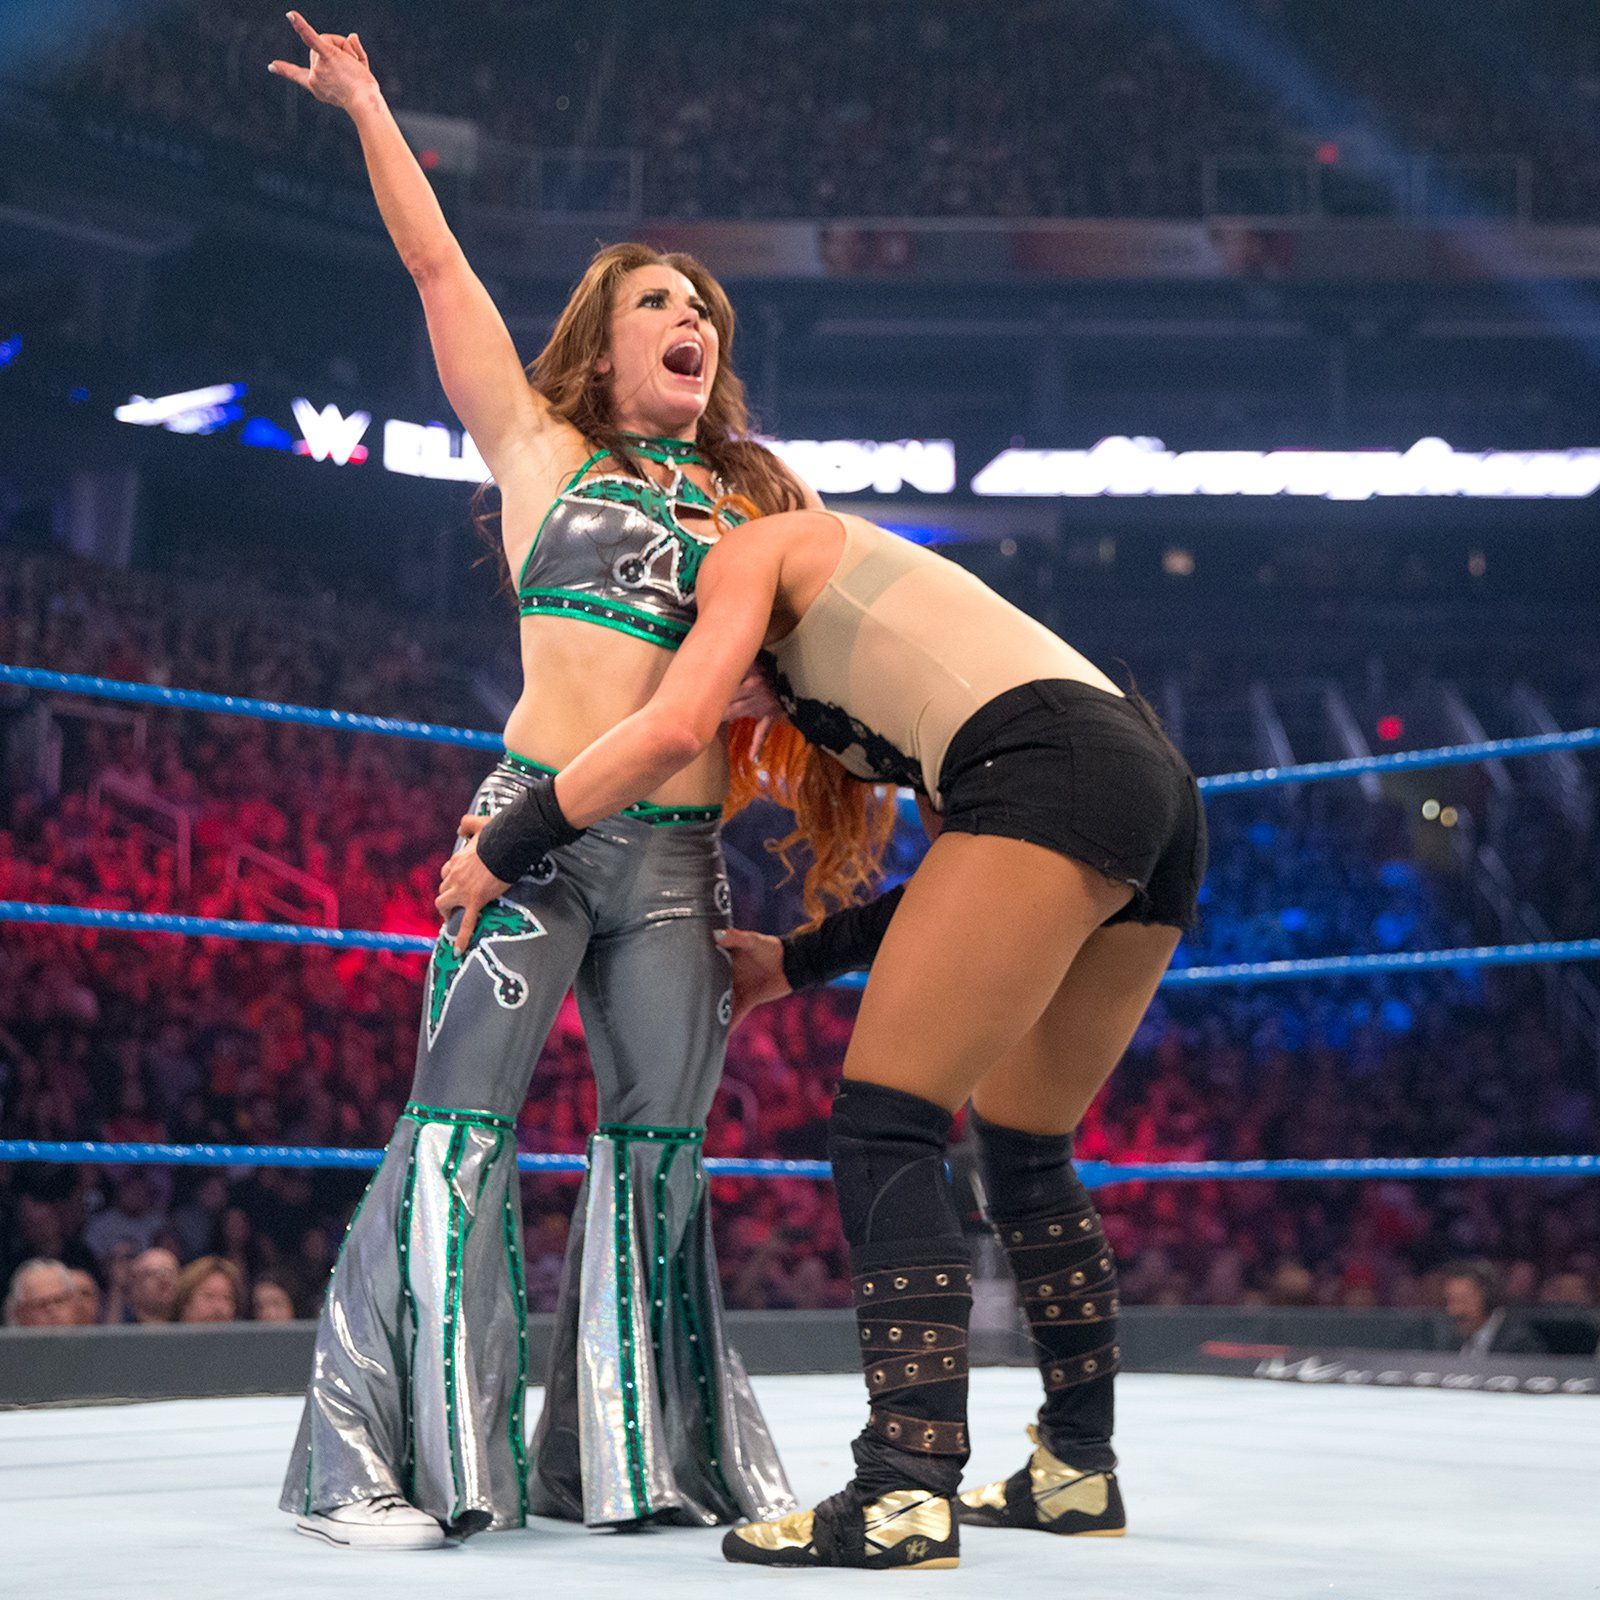 Mickie James' Mickie-DT